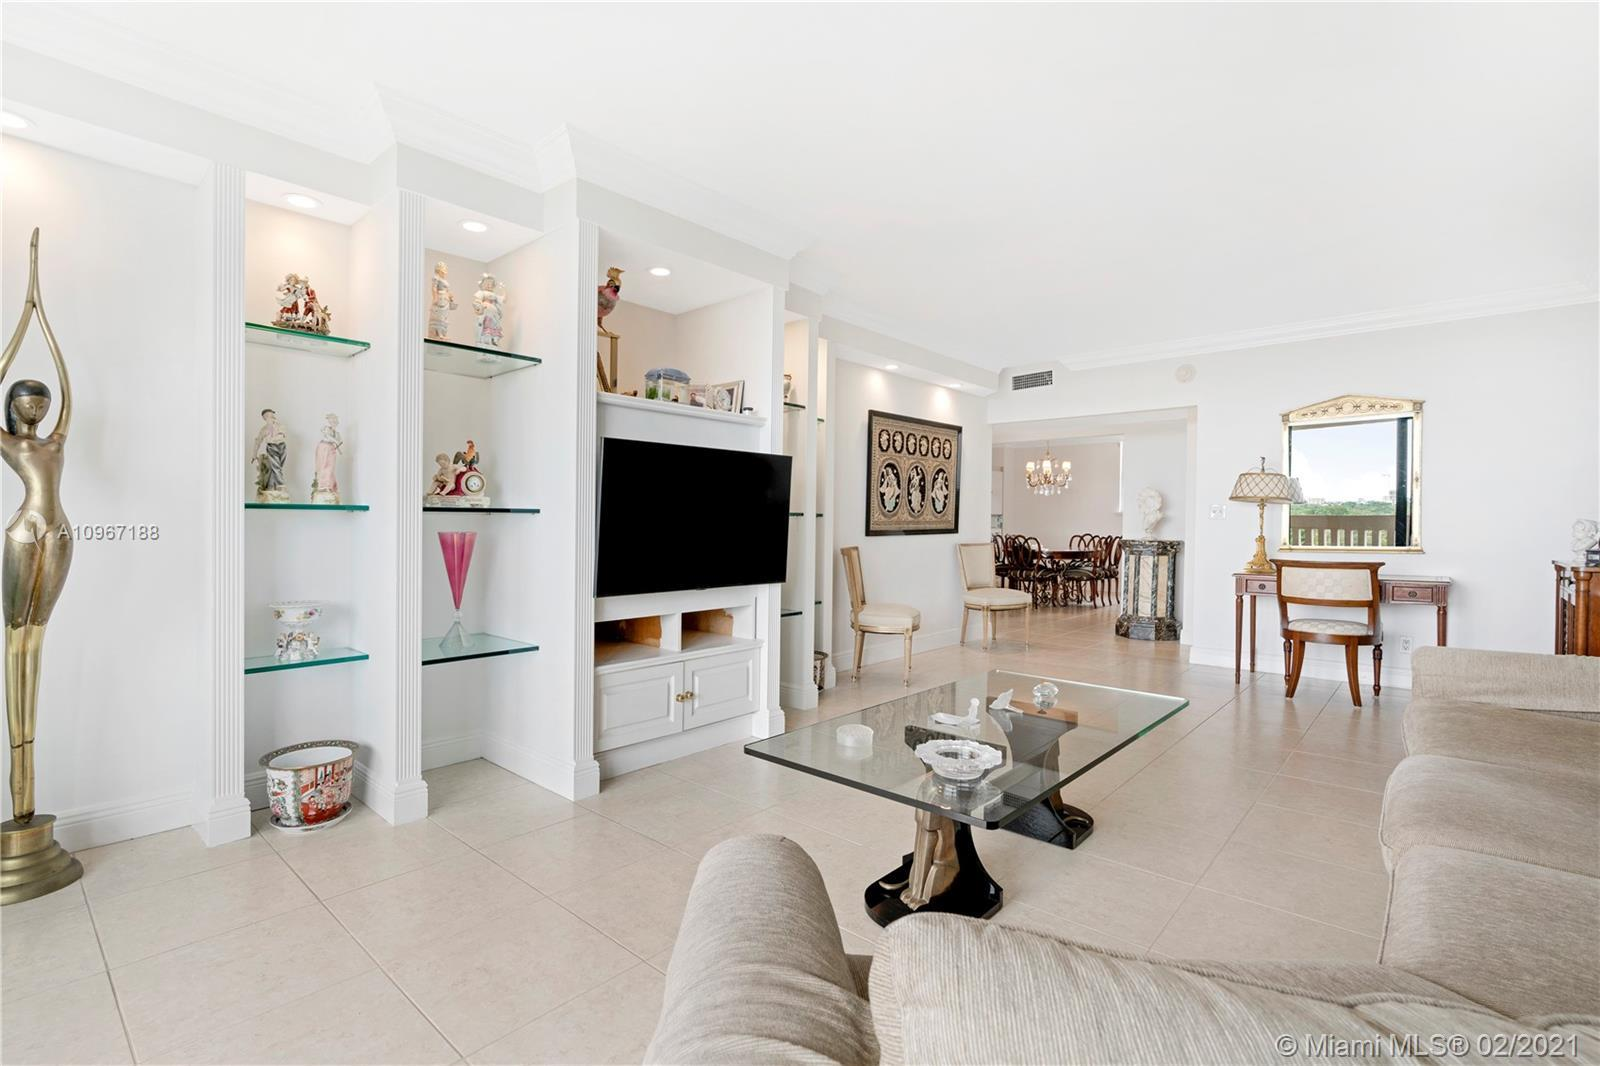 Situated alongside the scenic Coral Gables Waterway, you will find this 2/2.5 corner unit at 90 Edge